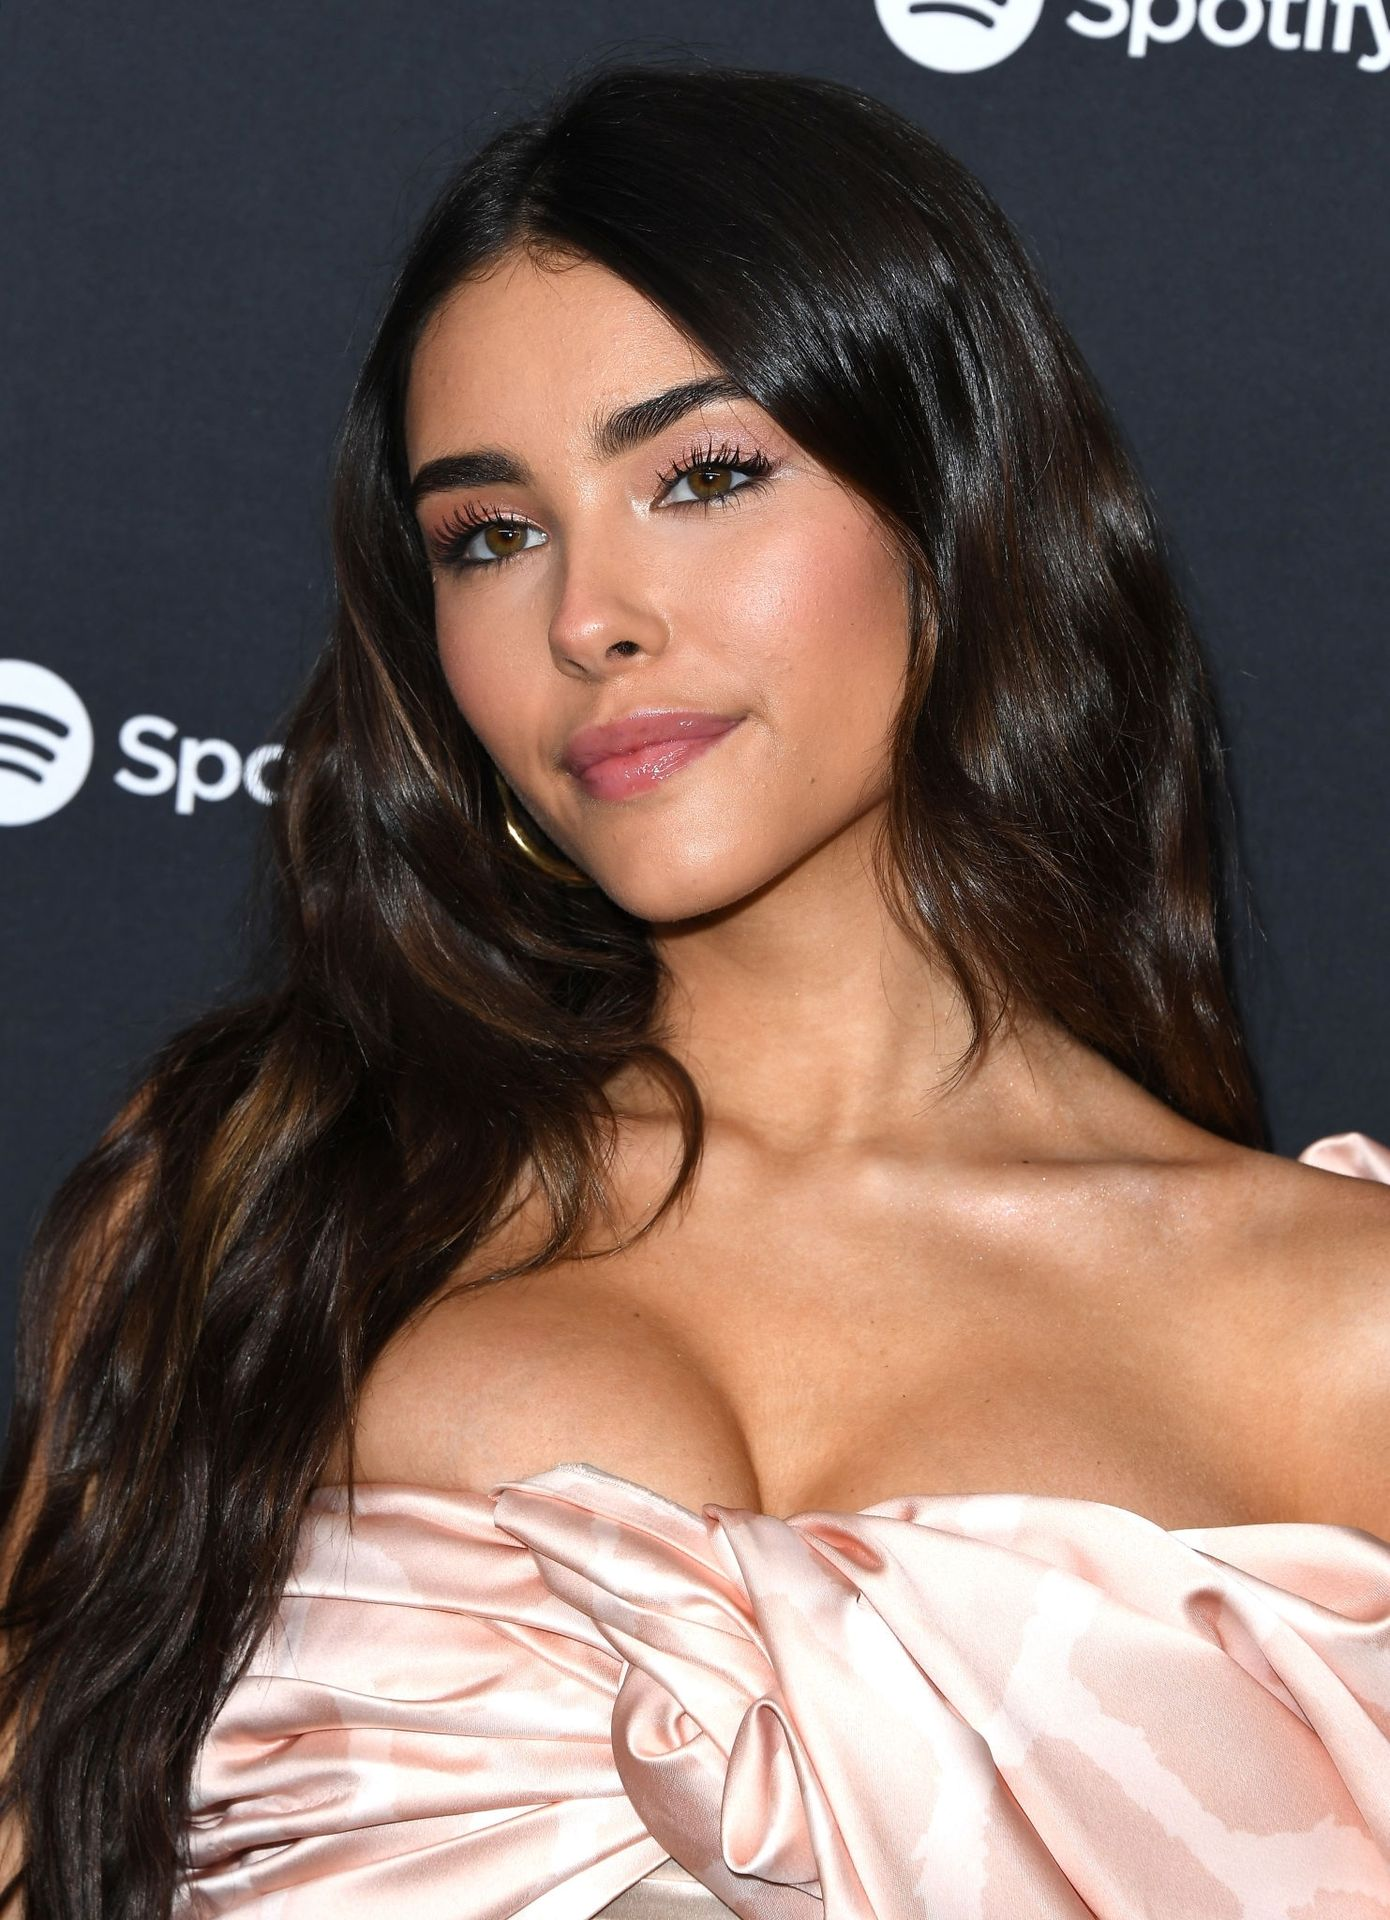 Madison Beer Displays Her Boobs At The Spotify Best New Artist Party 0004